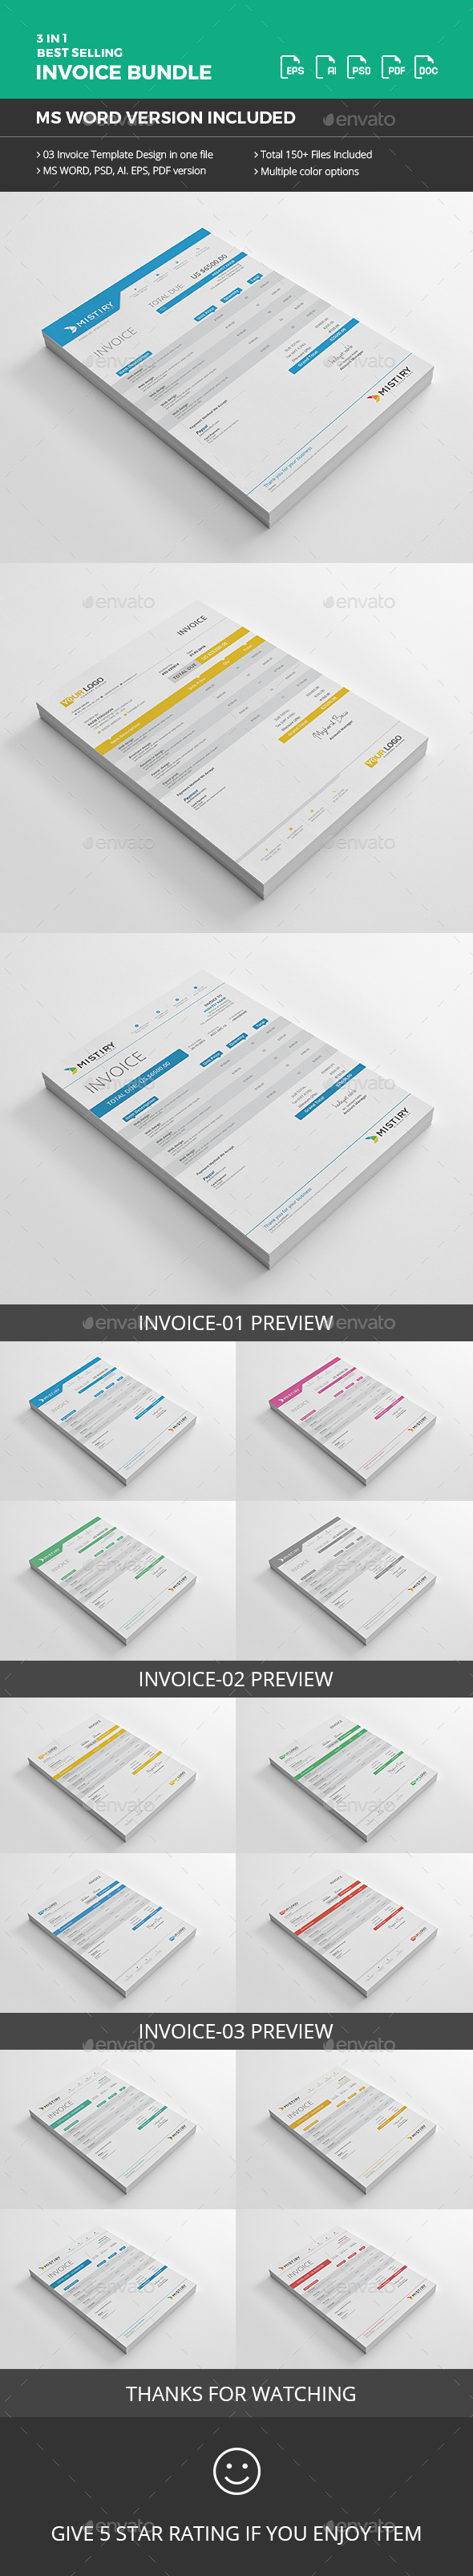 Invoice Bundle with MS Word - Proposals & Invoices Stationery